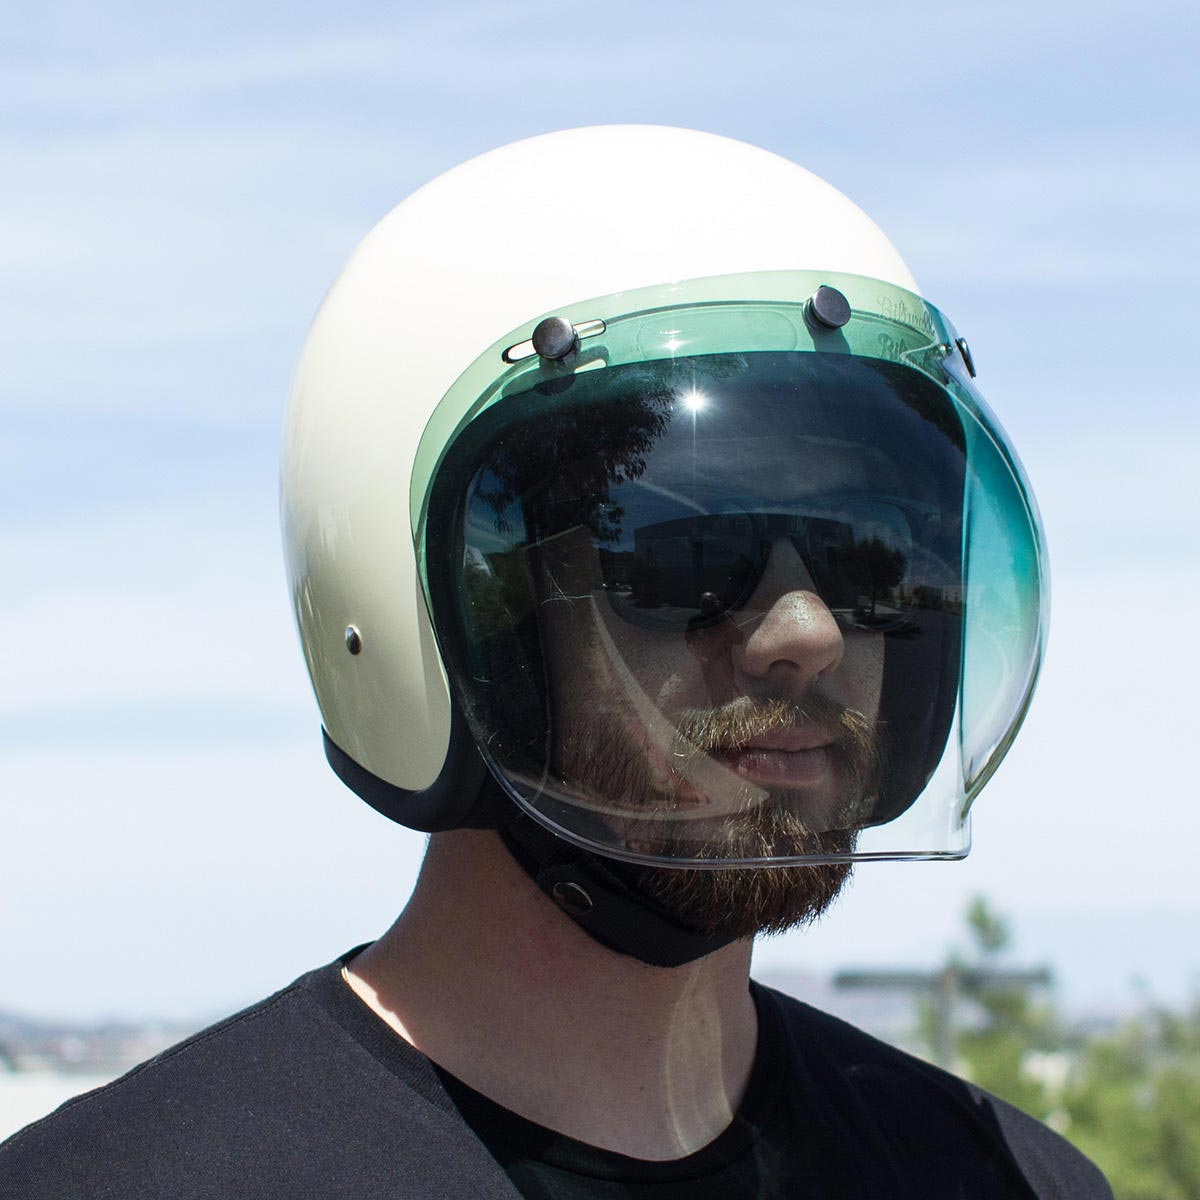 Visière Biltwell Bubble Shield Gradient Green écran Casque Moto Jet